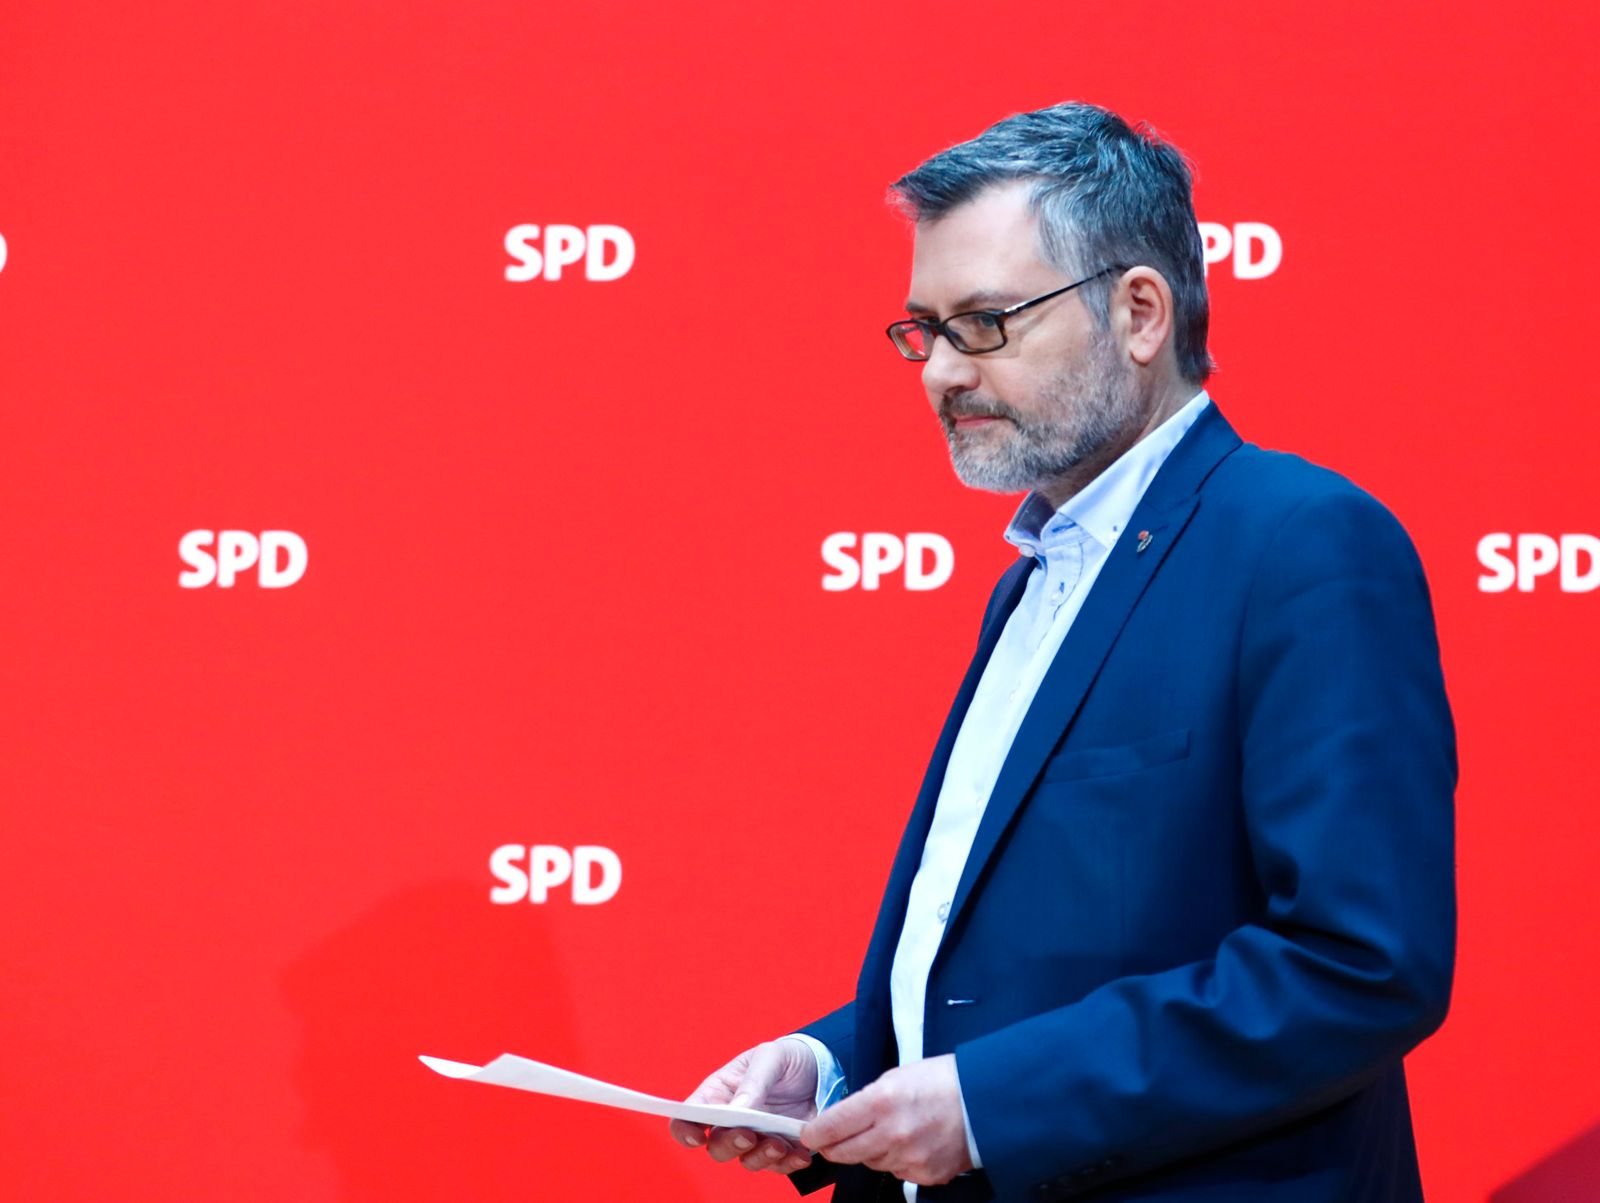 Nietan of Social Democratic Party (SPD) arrives to the news conference to announce the results of the voting about forming for a possible coalition between SPD and CDU in Berlin